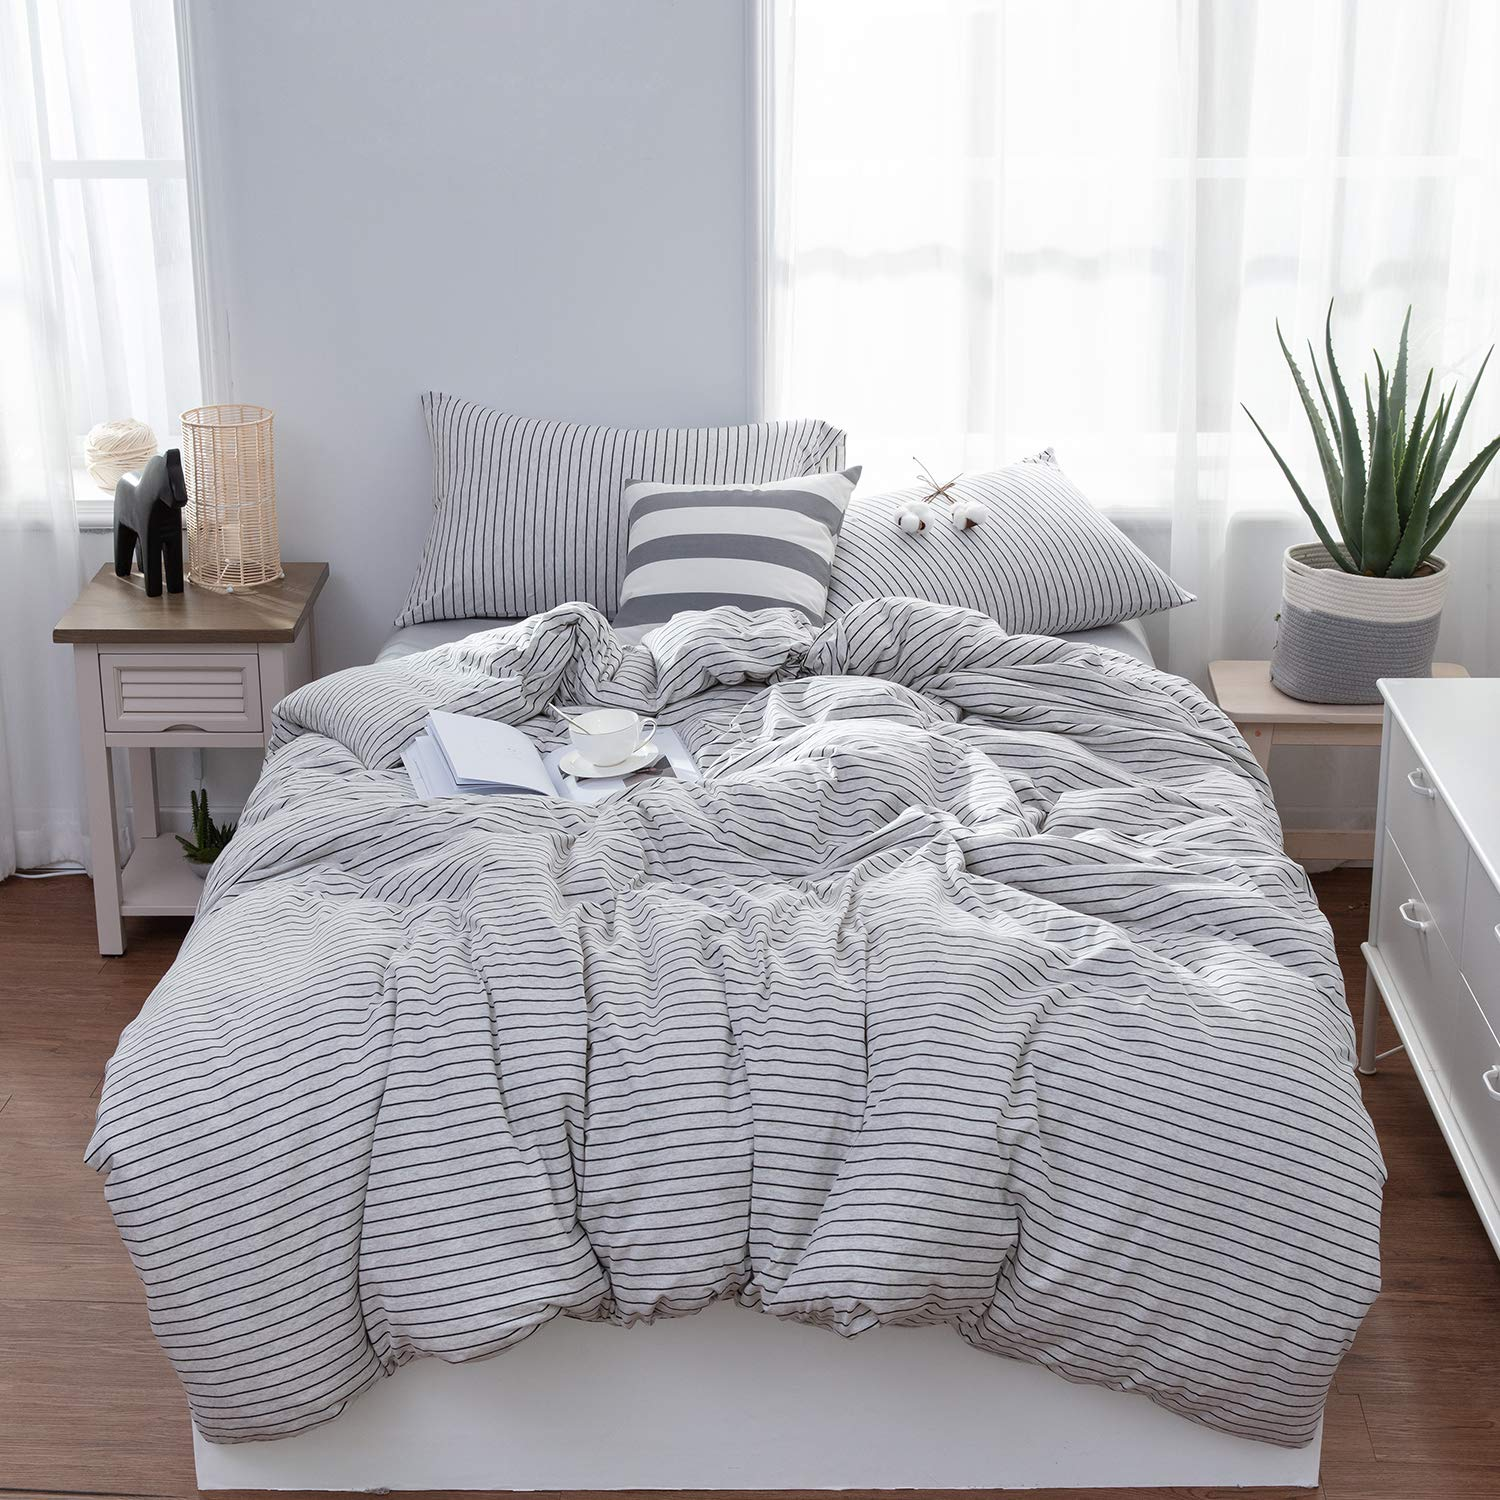 LIFETOWN Jersey Knit Cotton Duvet Cover Queen, 1 Duvet Cover and 2 Pillowcases, Striped Duvet Cover Set, Extremely Soft and Breathable (Full/Queen, Grey White/Black Stripes)